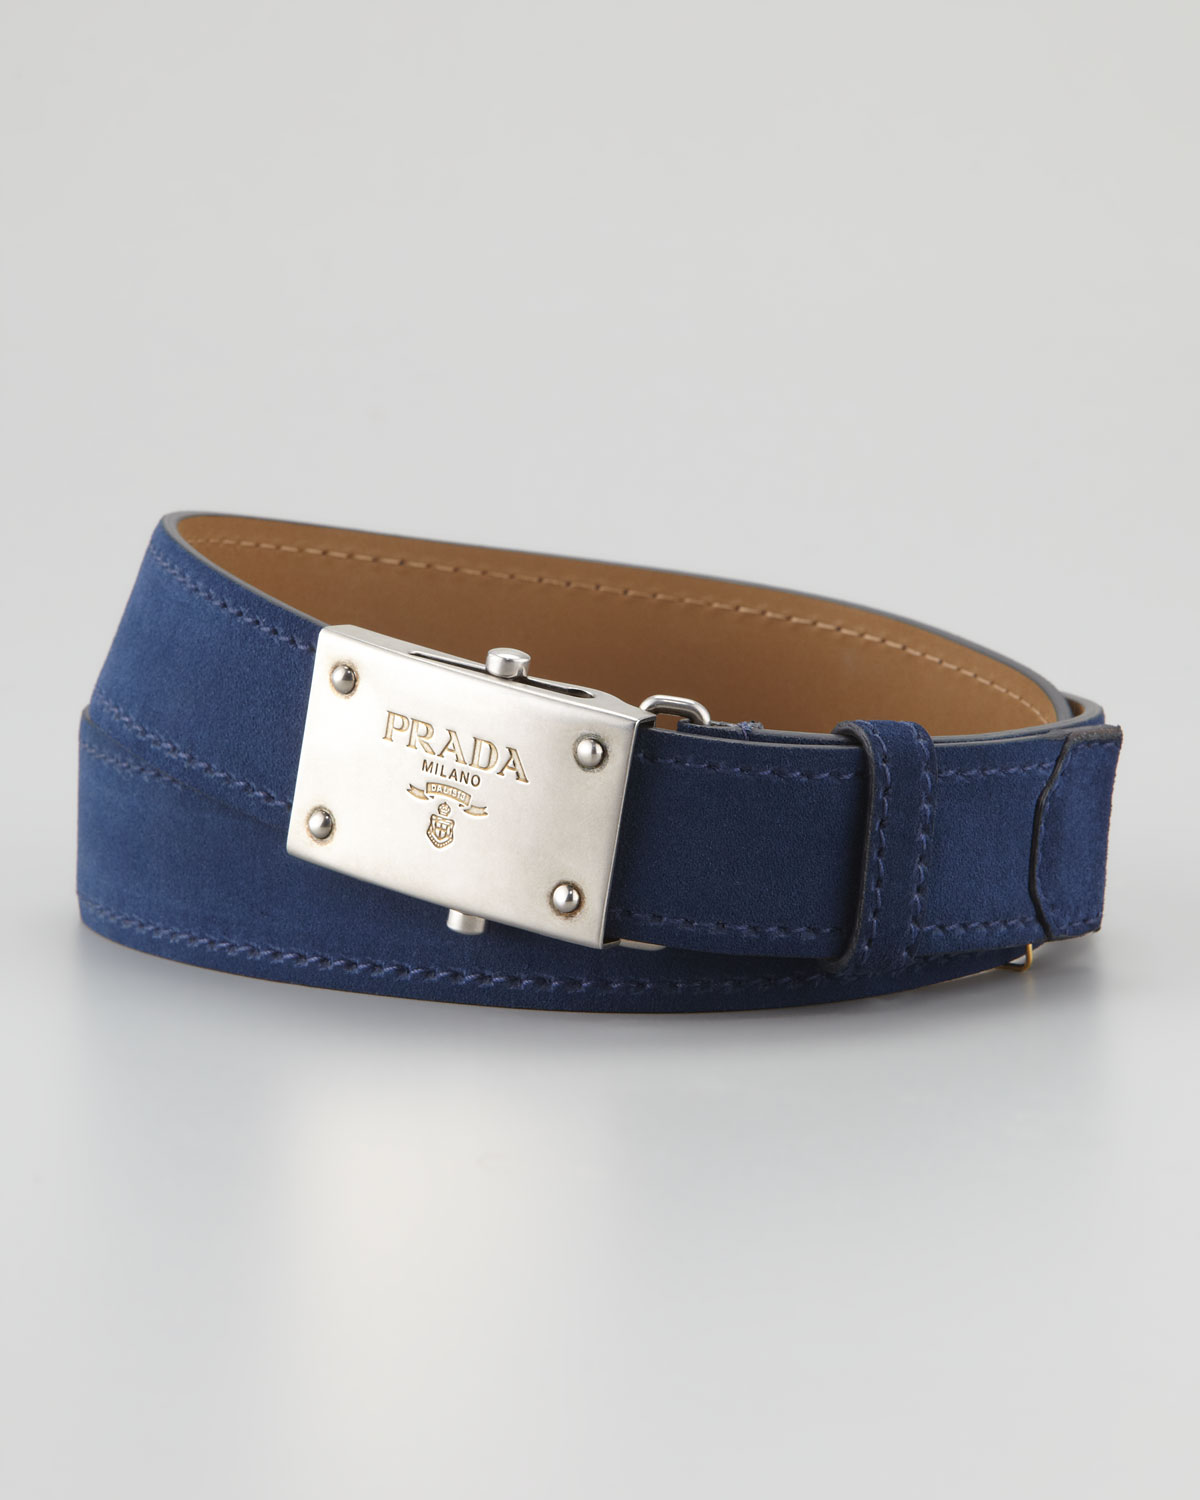 7d9fc6d2e2ff spain saffiano leather belt by prada 390 31c40 44508  new arrivals lyst  prada suede belt in gray for men e887b 87d24